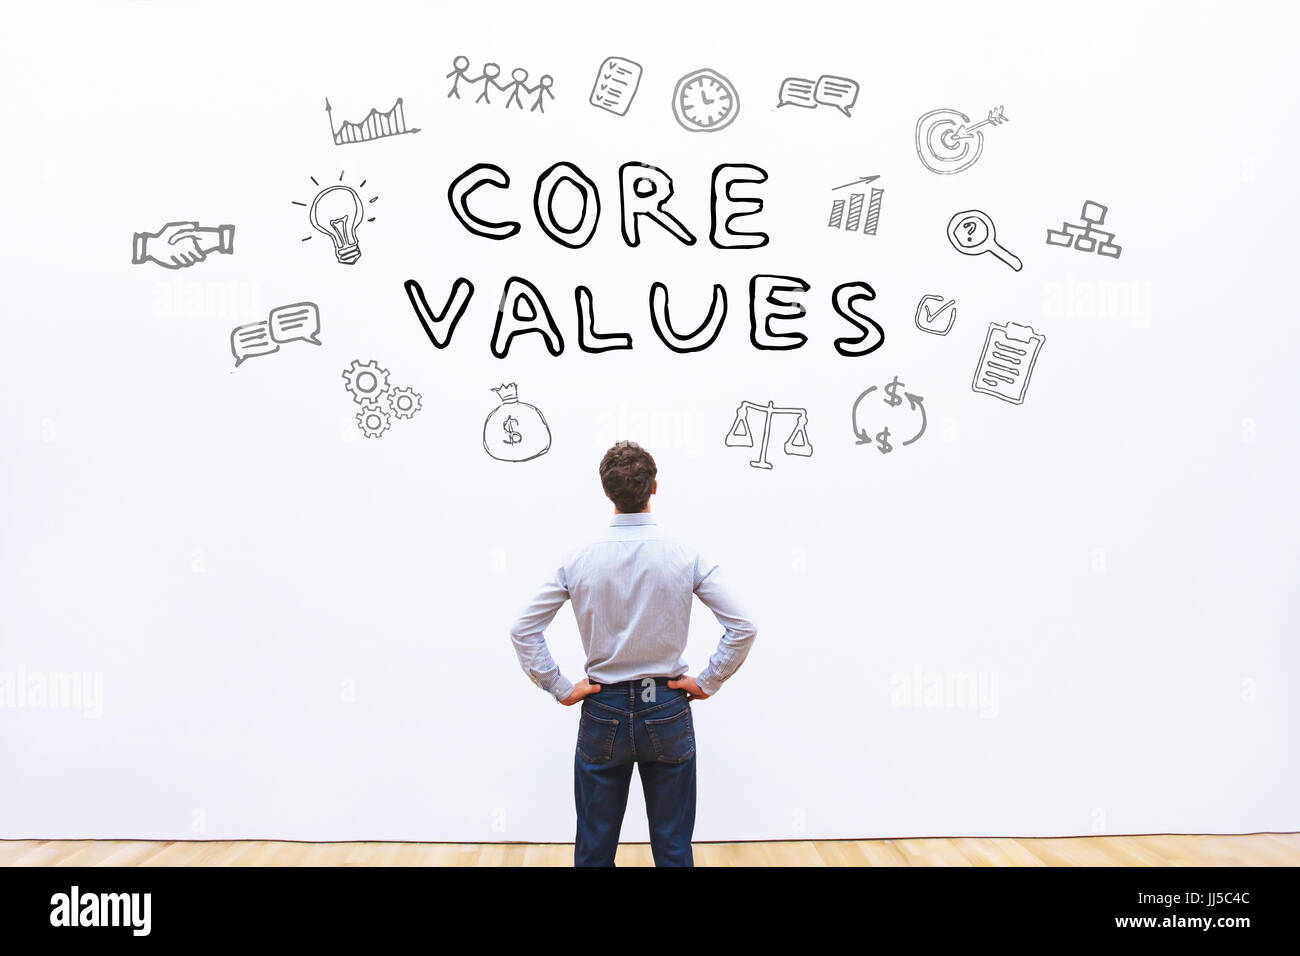 core values concept - Stock Image